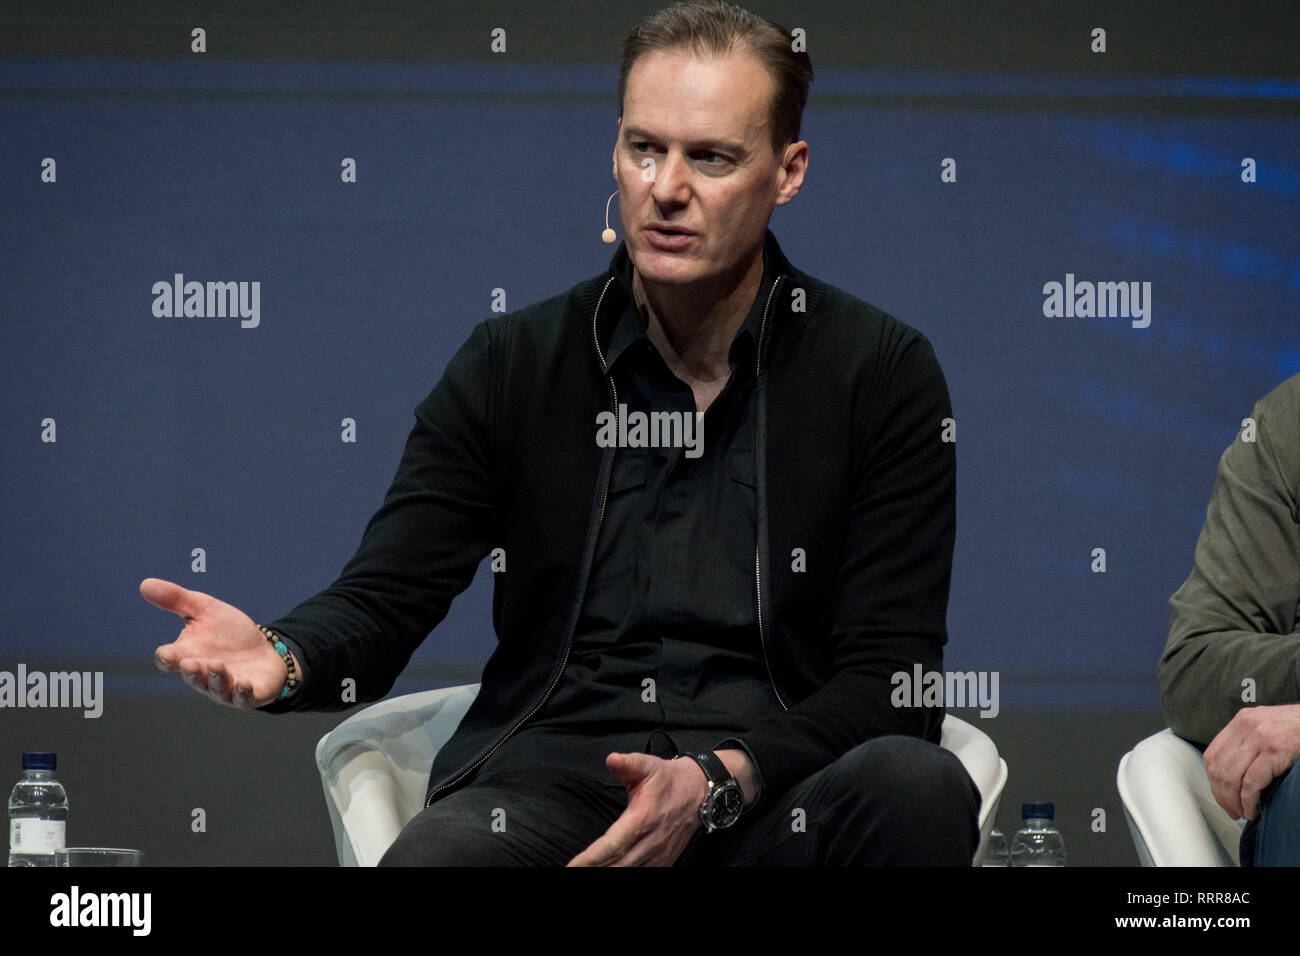 Barcelona, Spain. 26th Feb 2019. February 26, 2019 - Barcelona, Catalonia, Spain -  Jörg Reimann of  BMW Group  speaks during a conference at GSMA Mobile World Congress 2019 in Barcelona, the world's most important event on mobile devices communications bringing together the leading companies and the latest developments in the sector. Credit:  Jordi Boixareu/Alamy Live News - Stock Image